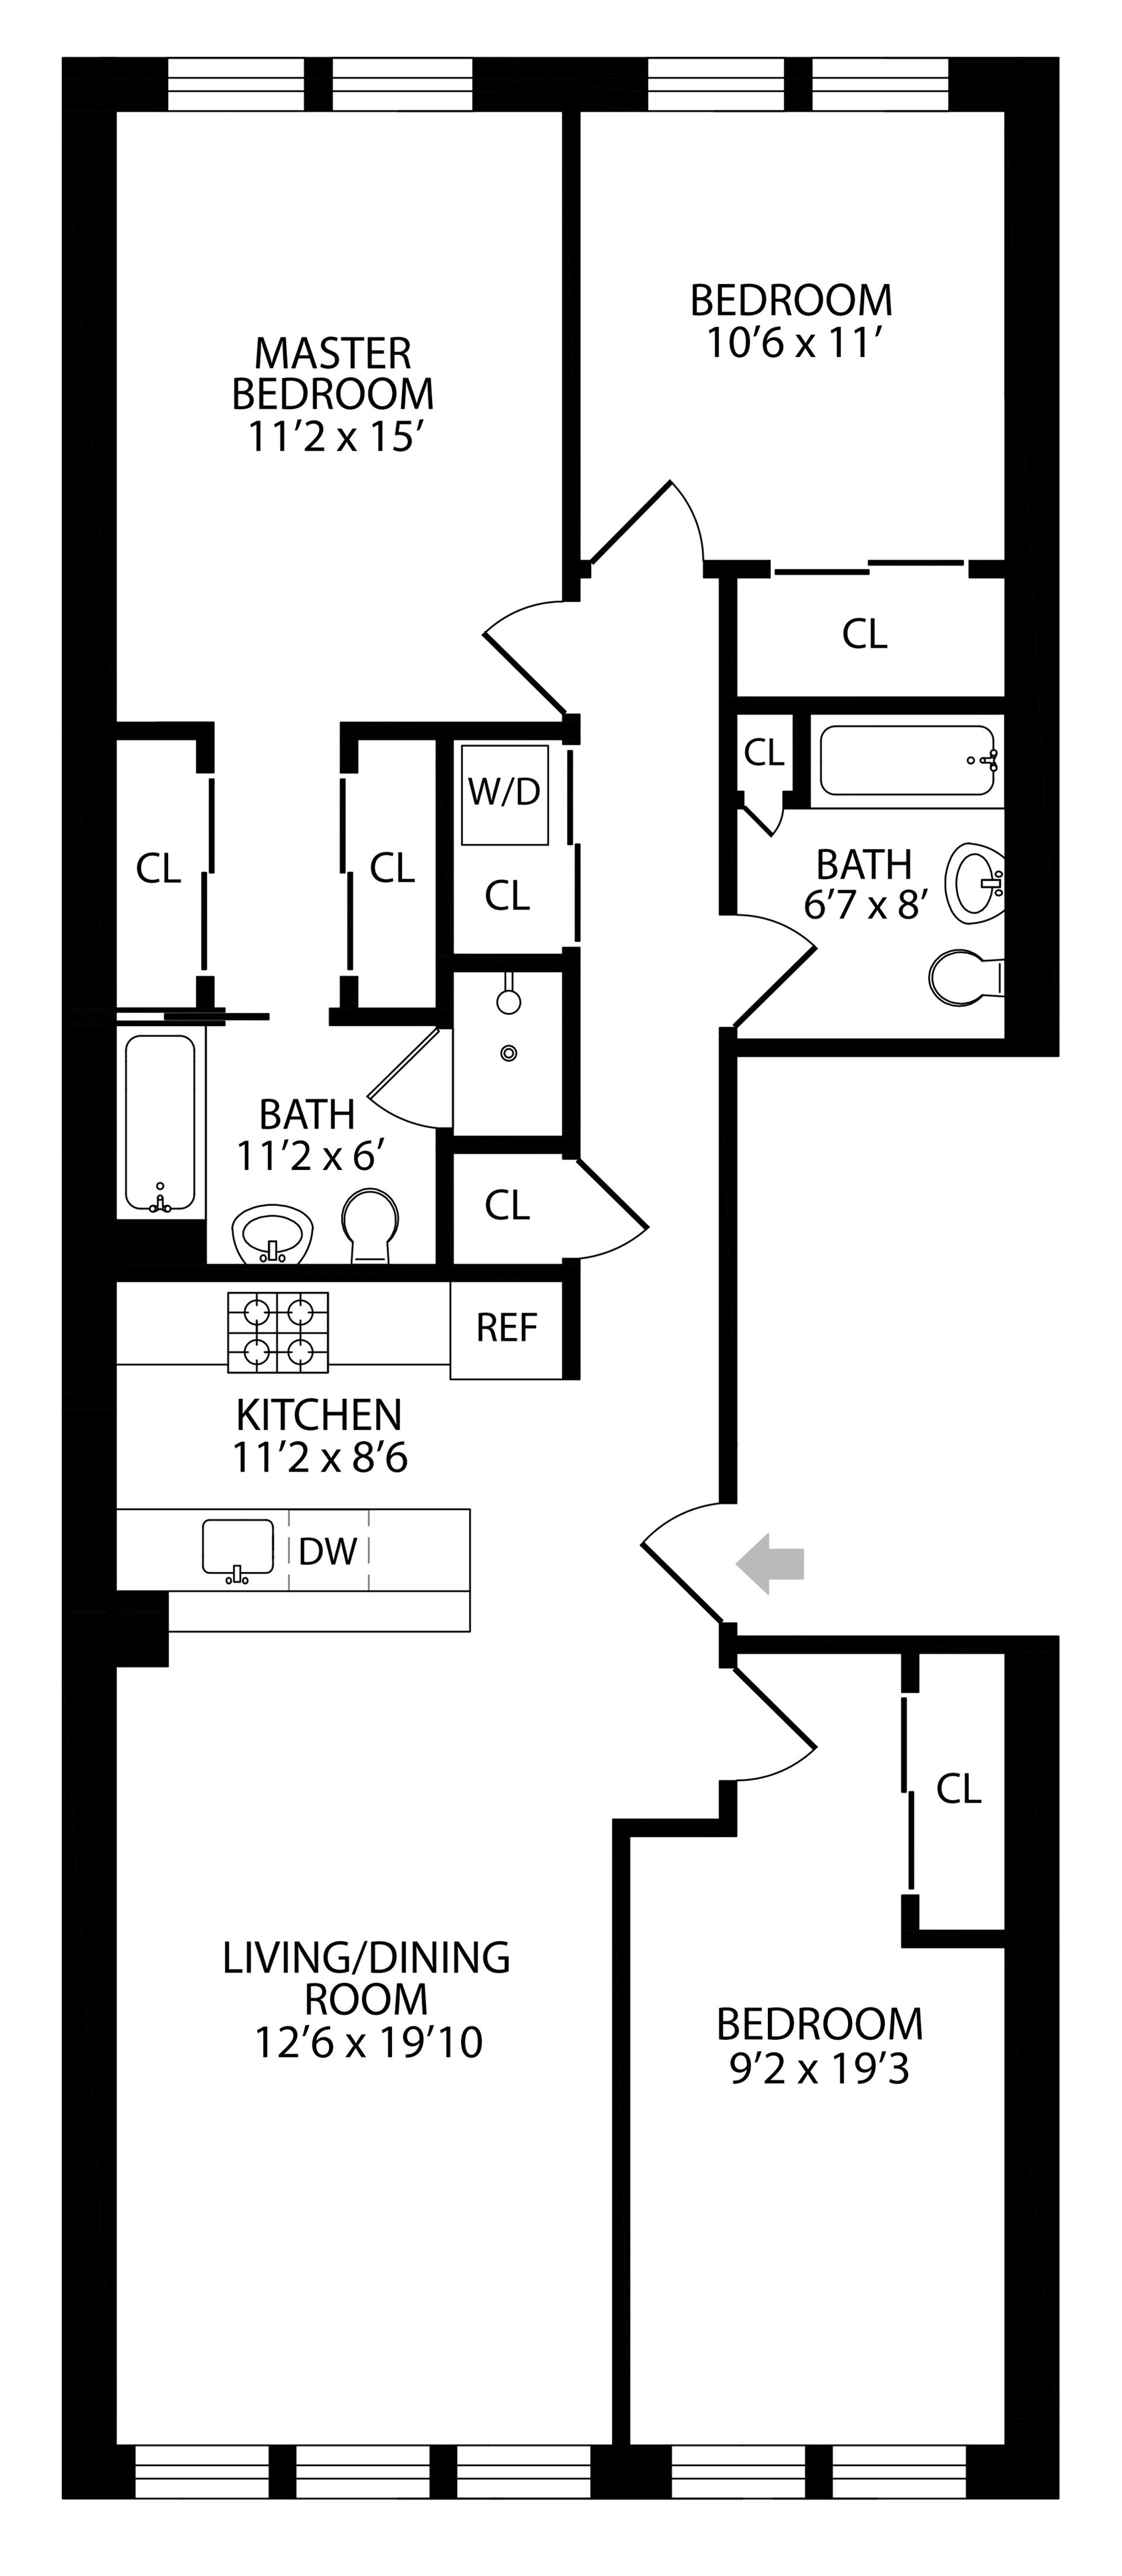 Floor plan of 197 22nd St, 2 - Greenwood, New York